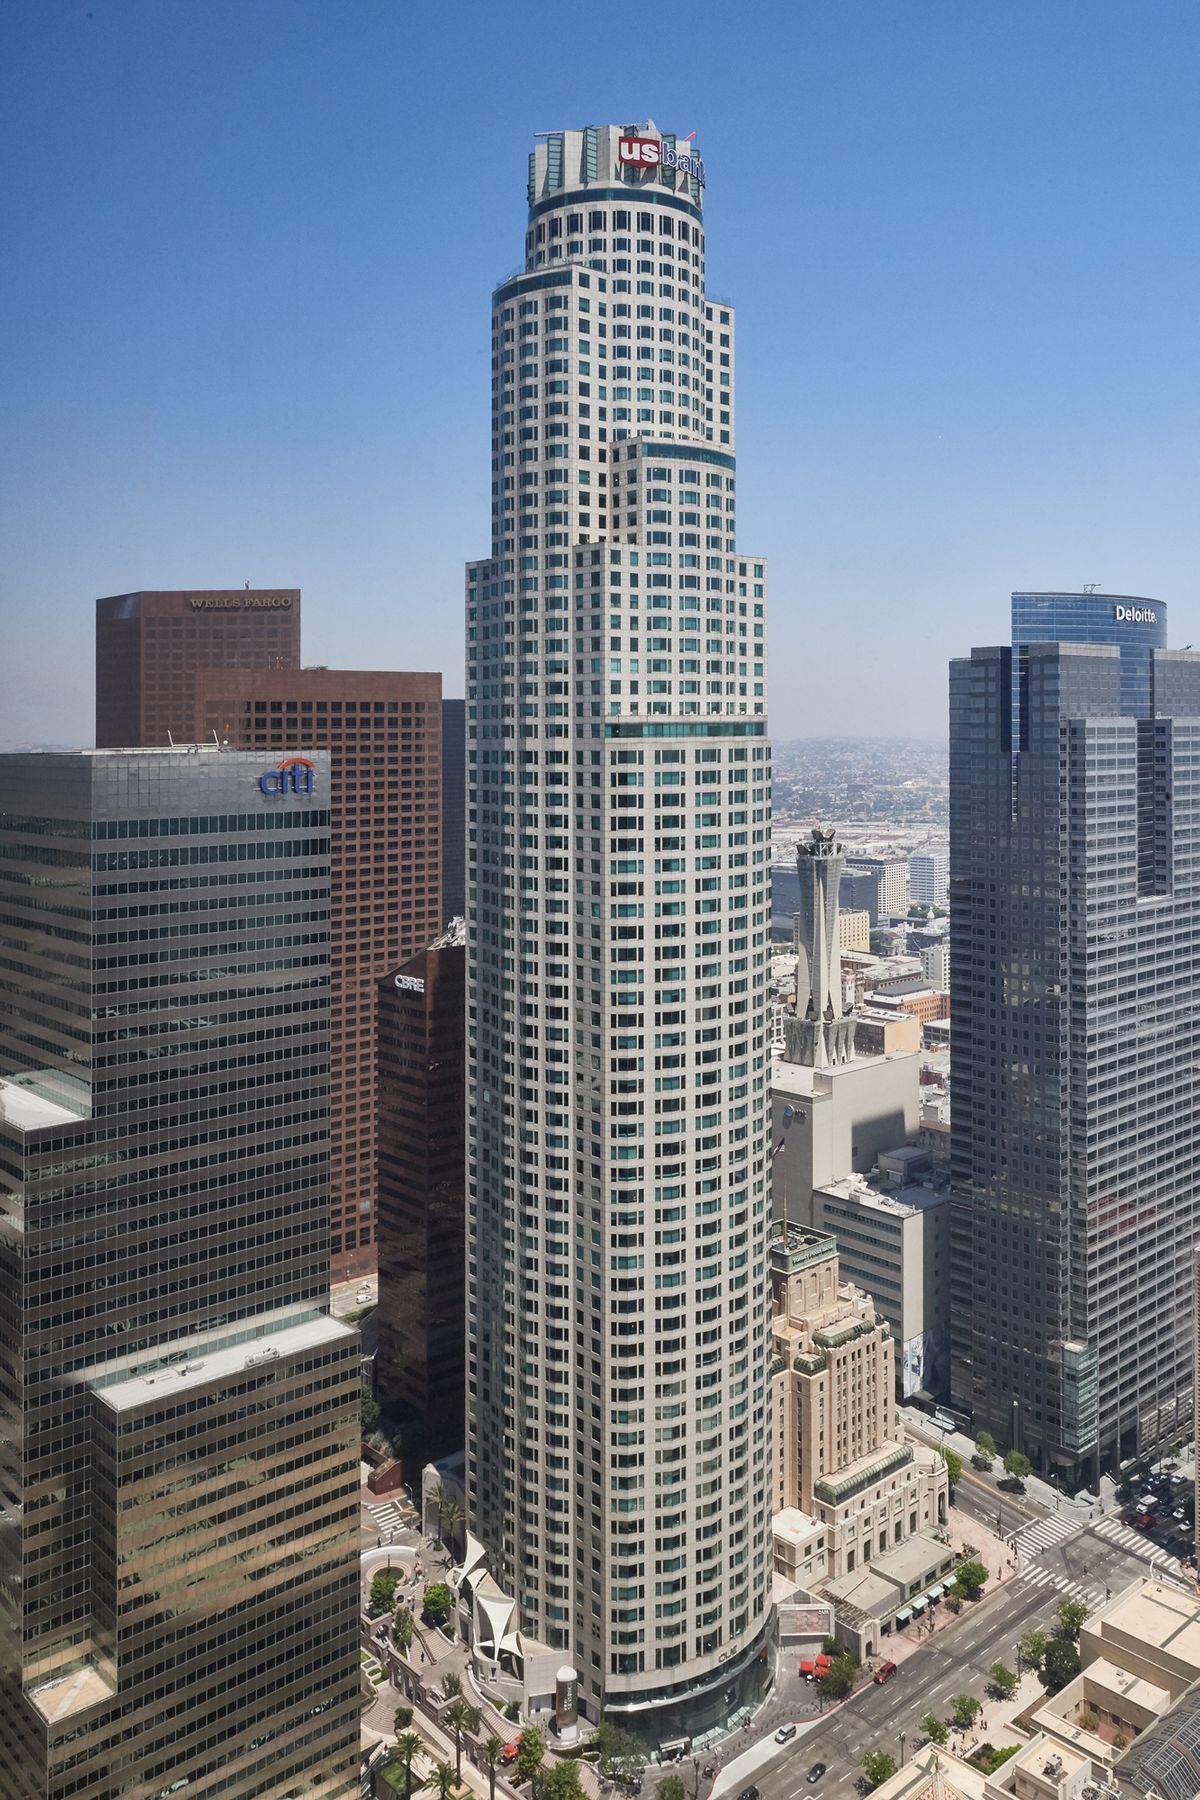 Commercial Architectural Photography Portfolio of Architectural Photographer Peter Christiansen Valli - US Bank Tower